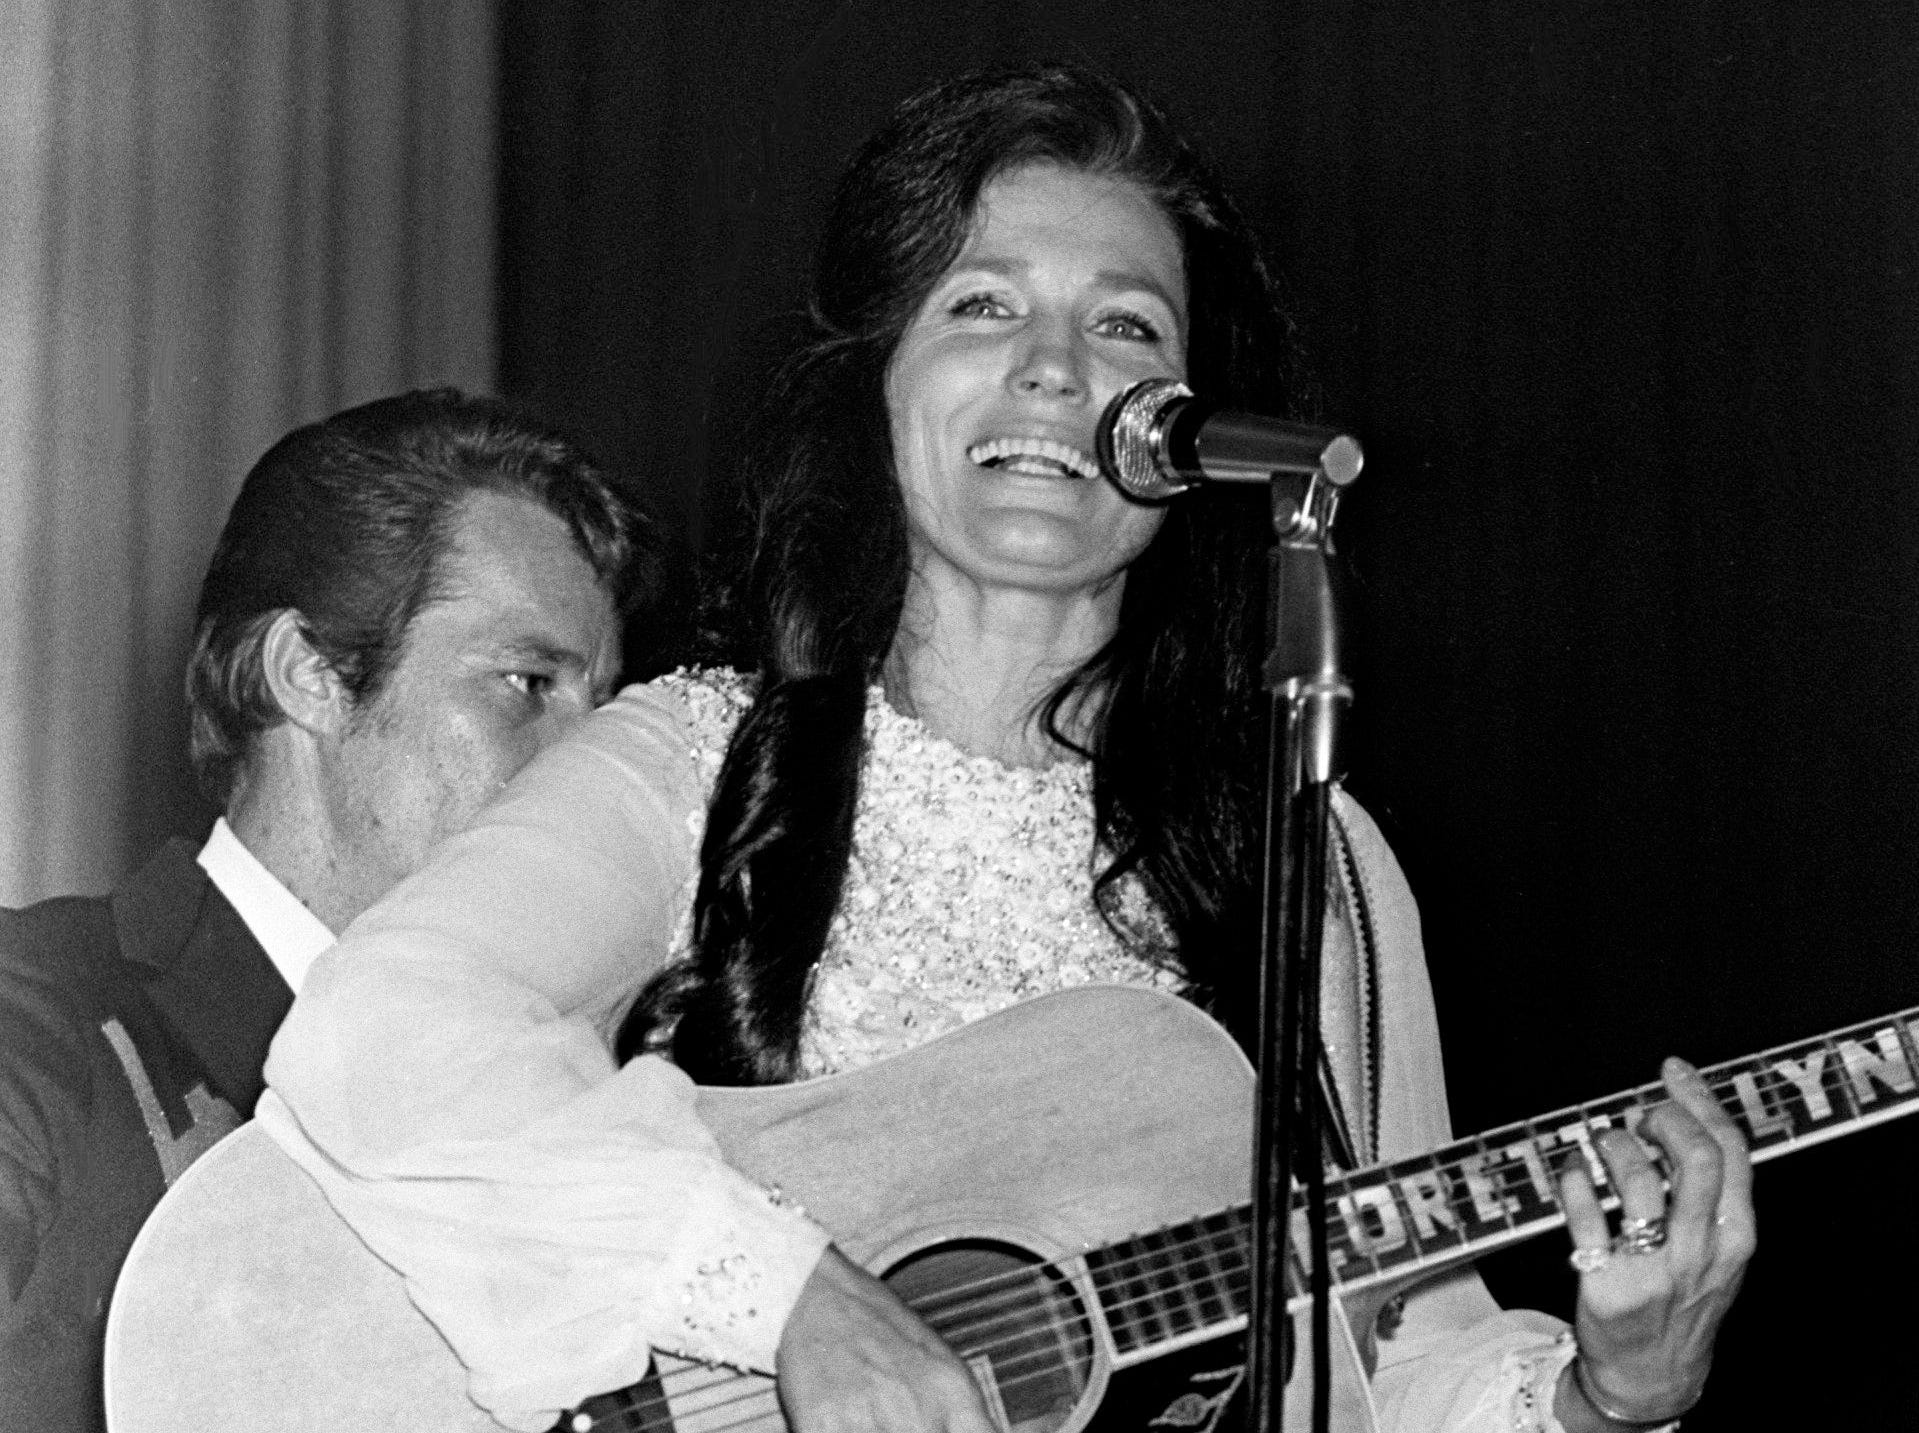 """More than 1,500 inmates at Tennessee State Prison in Nashville applaud, whistle and yell for """"more"""" from singer Loretta Lynn on Dec. 23, 1970. The Kentucky coal miner's daughter said she enjoyed doing the show for those who are behind bars because Christmas is so bleak for most of them."""